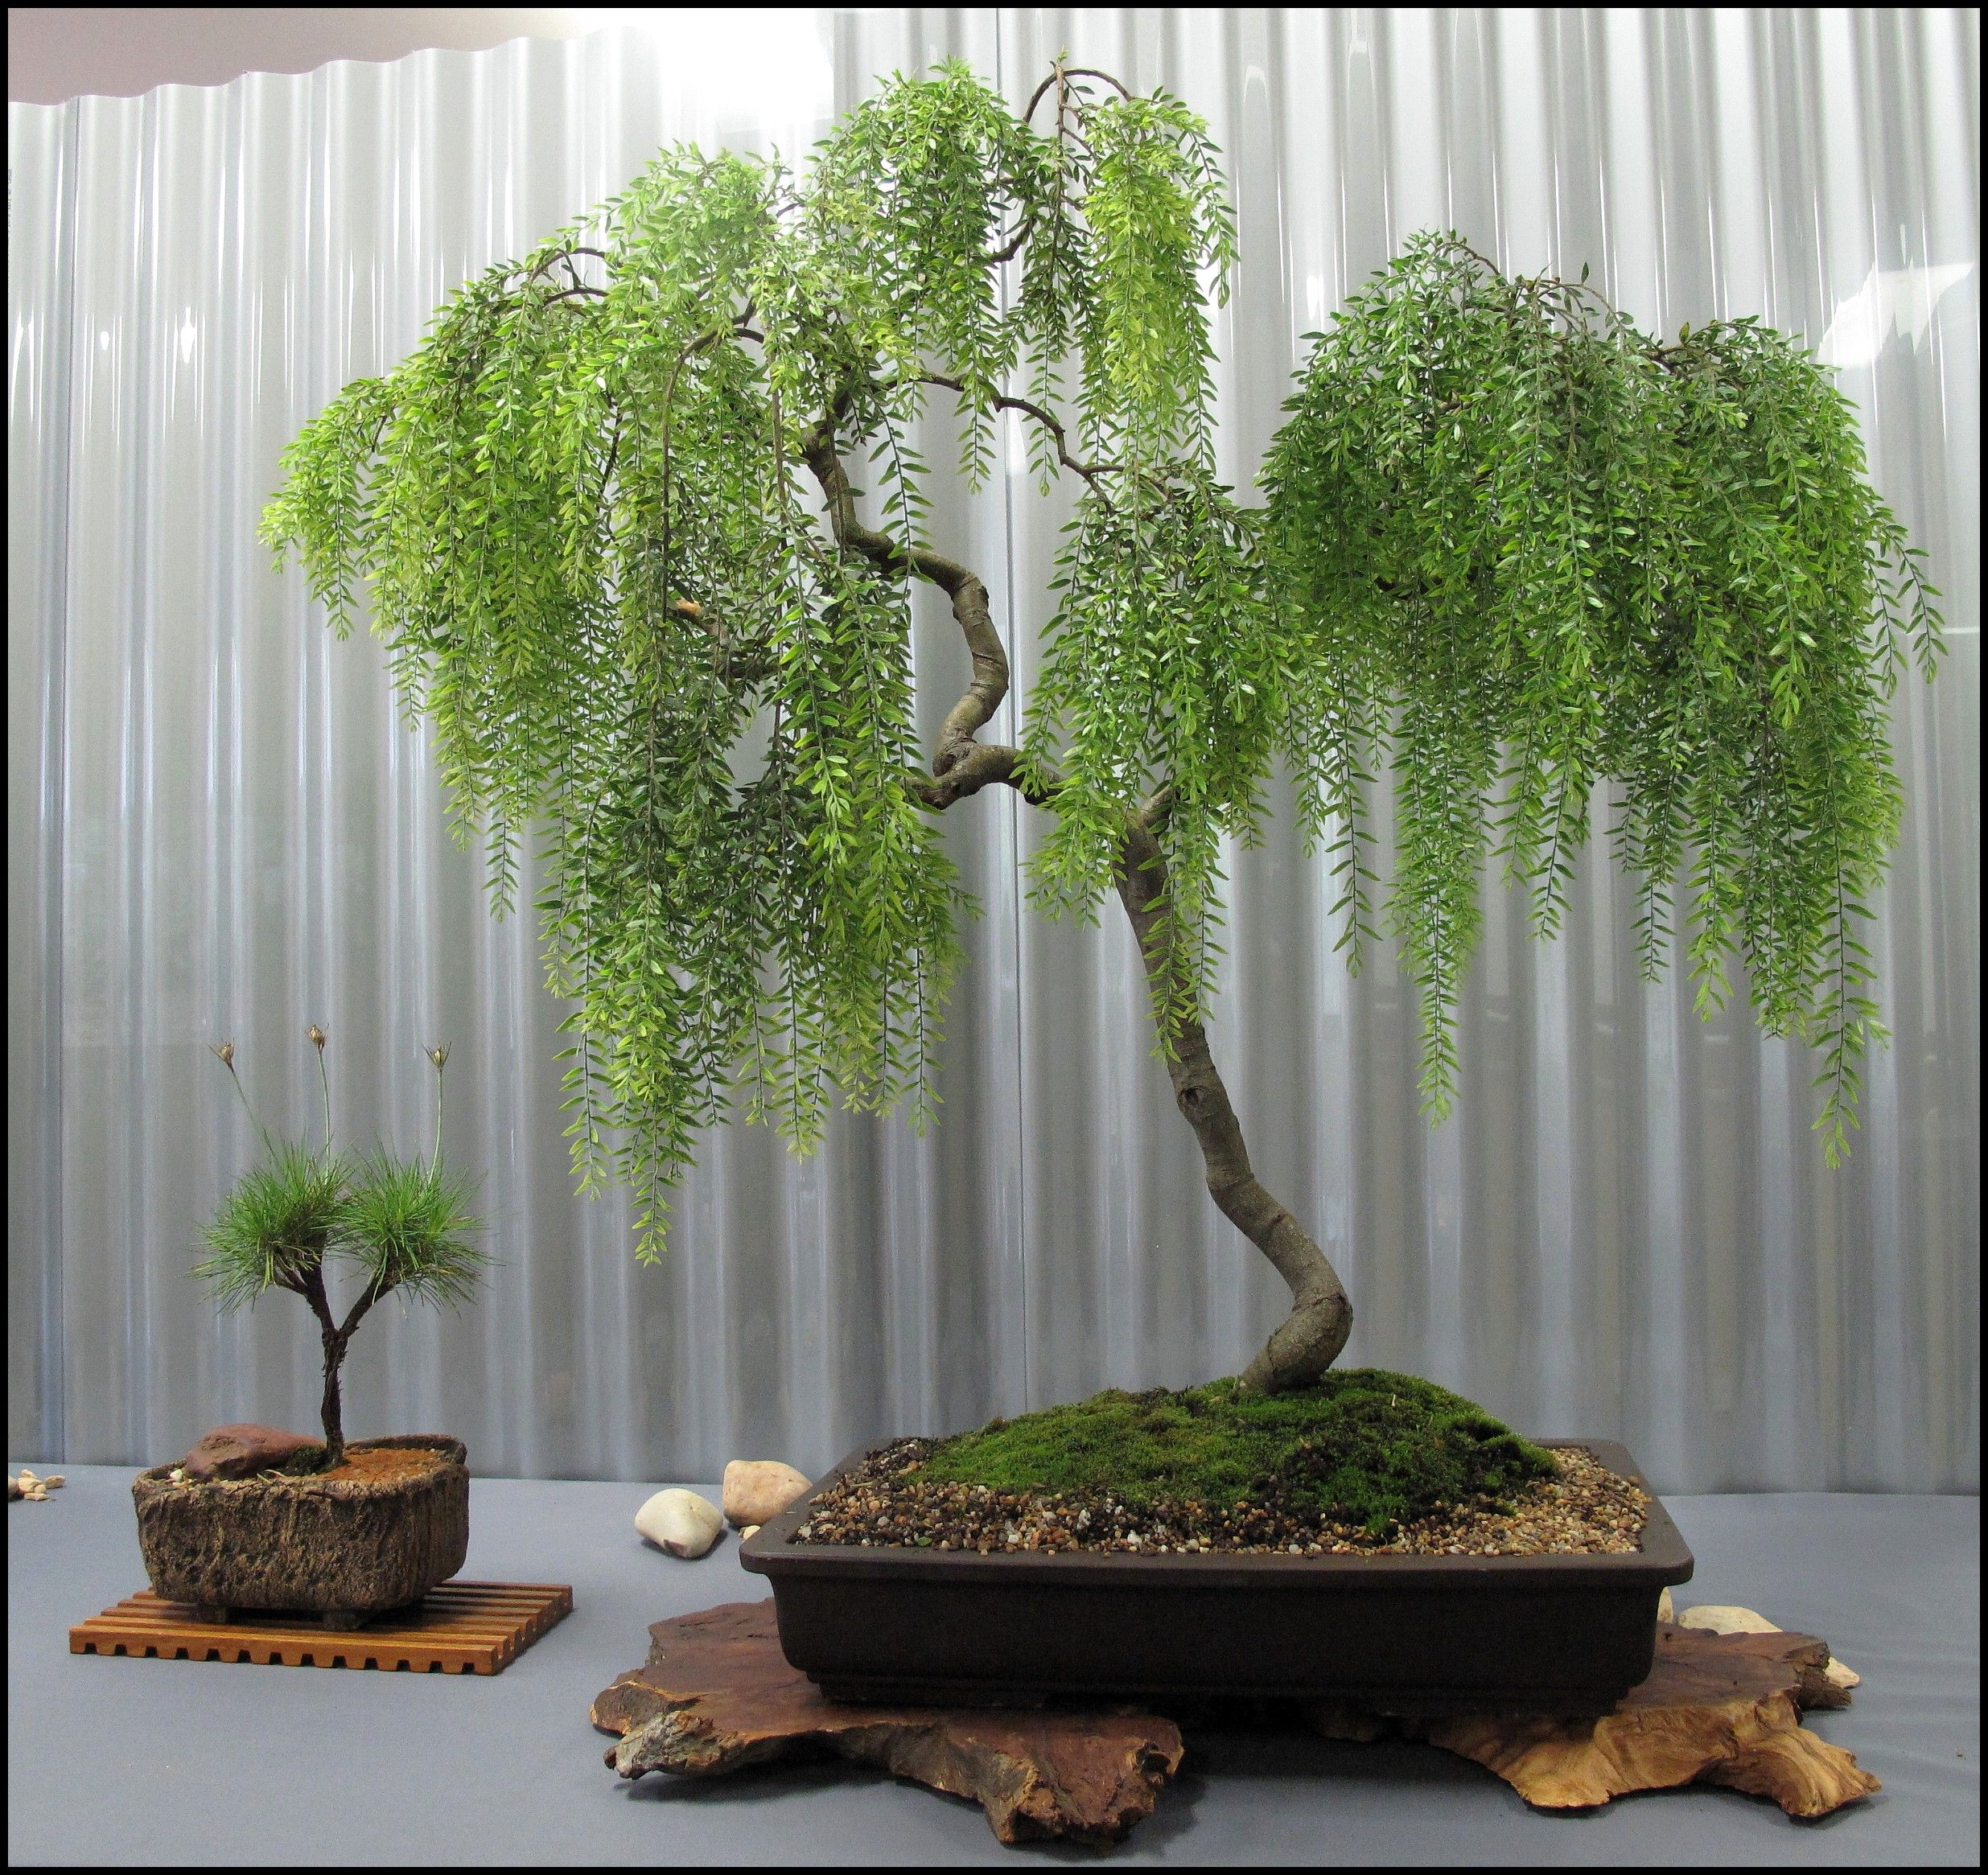 Weeping Willow Bonsai Tree Care Guide (Salix repens) | Bonsai Tree Gardener #bonsaiplants